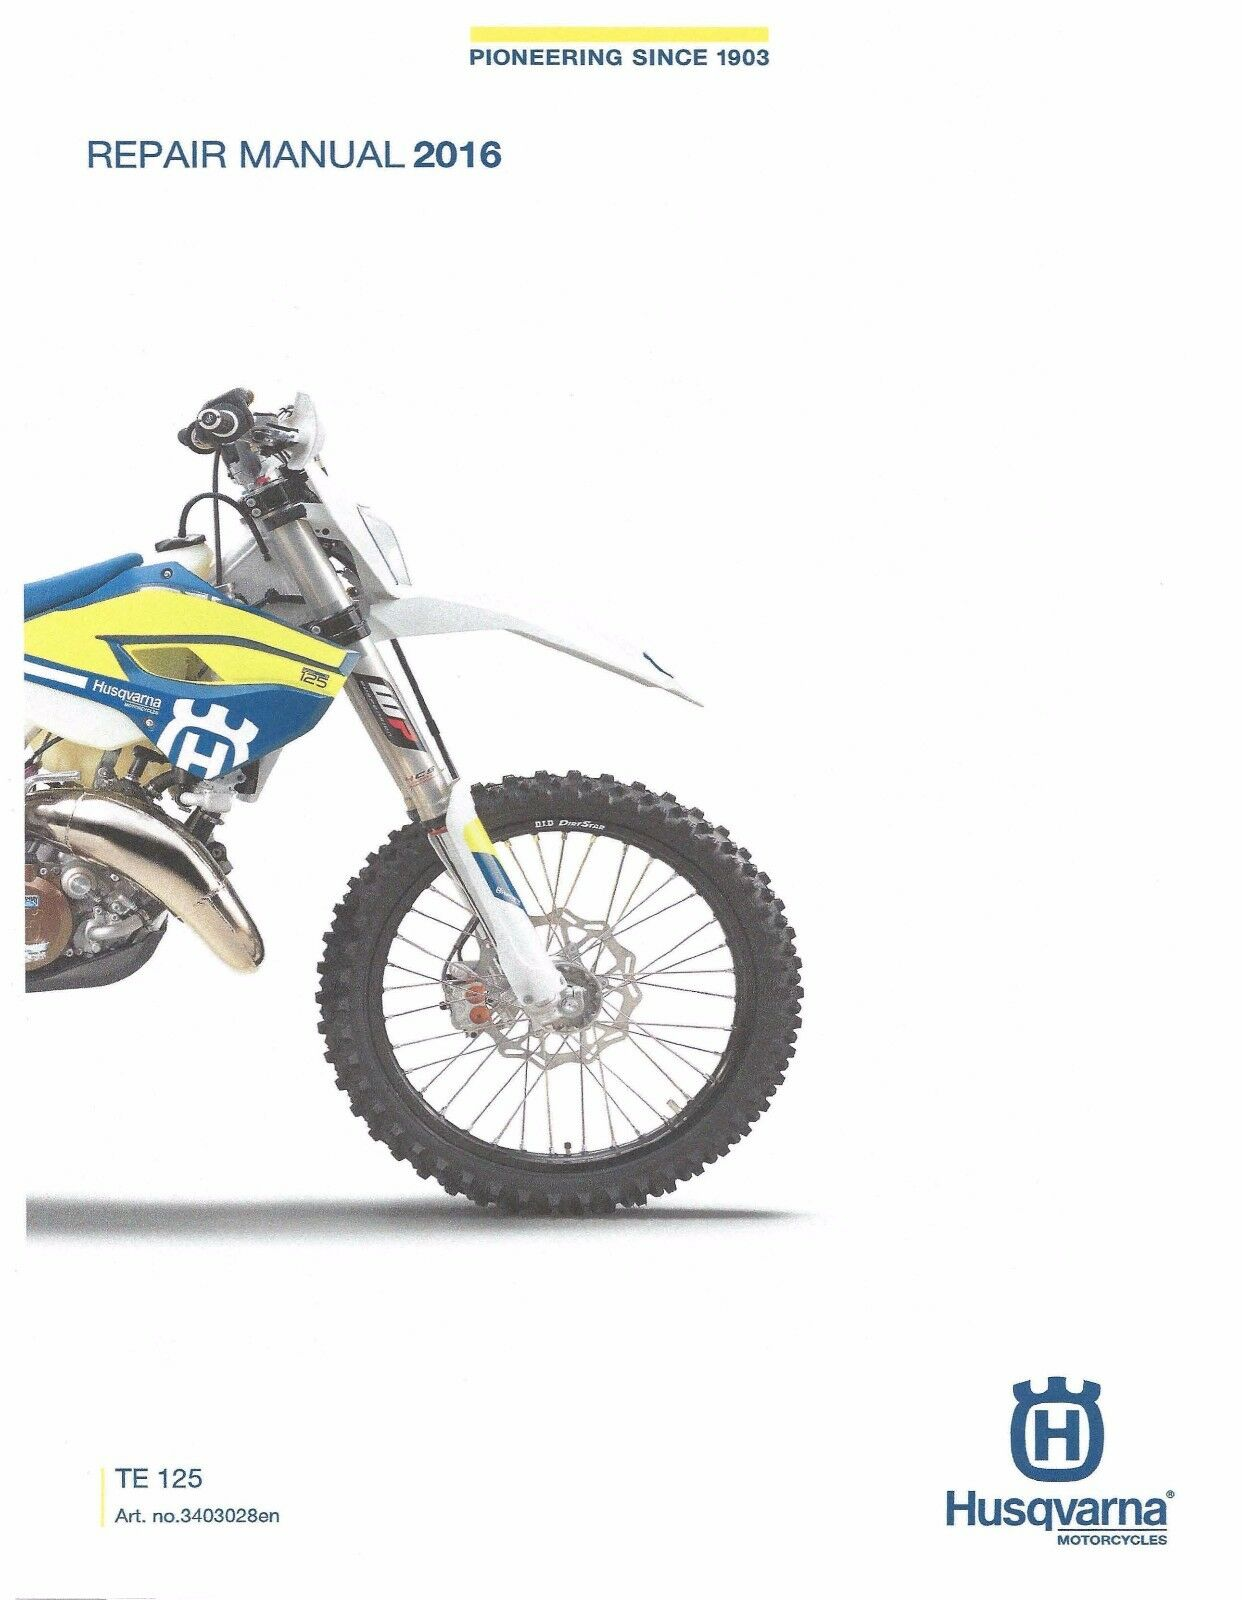 Husqvarna workshop service manual 2016 TE 125 1 of 10Only 1 available ...